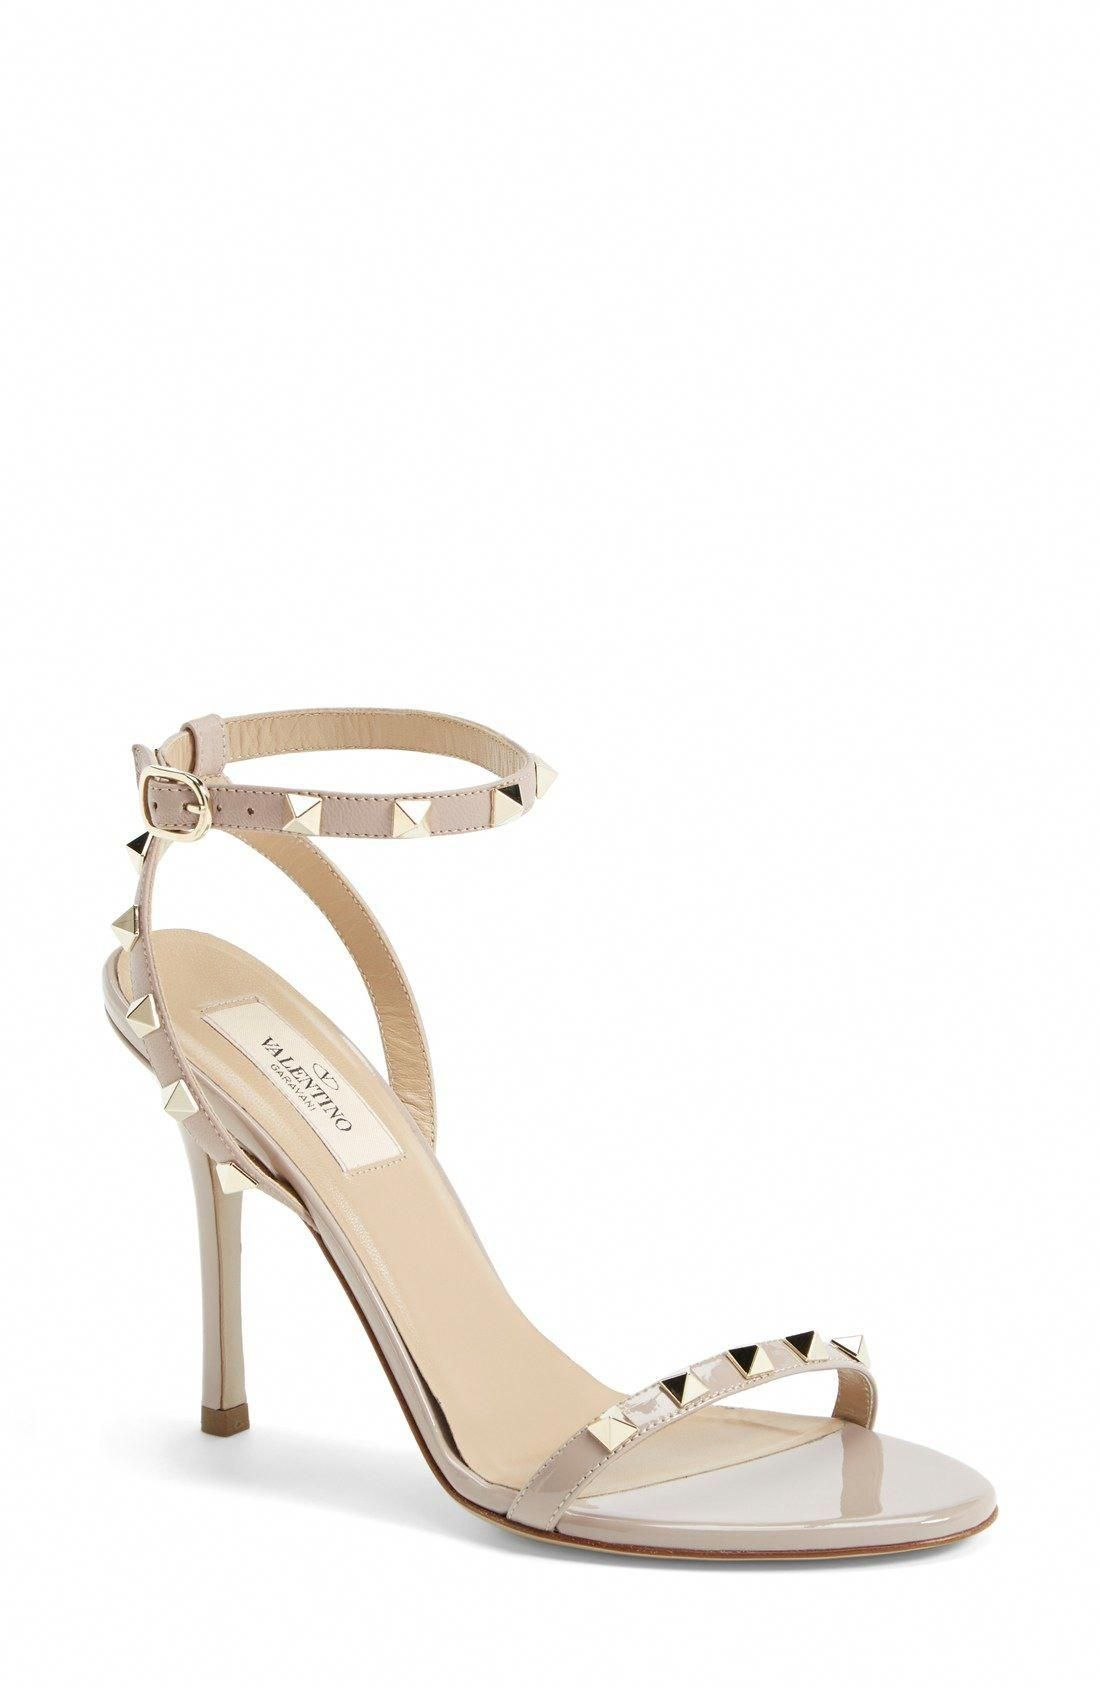 c2a26b40e638 Valentino  Rockstud  Ankle Strap Sandal (Women) available at  Nordstrom   Valentino